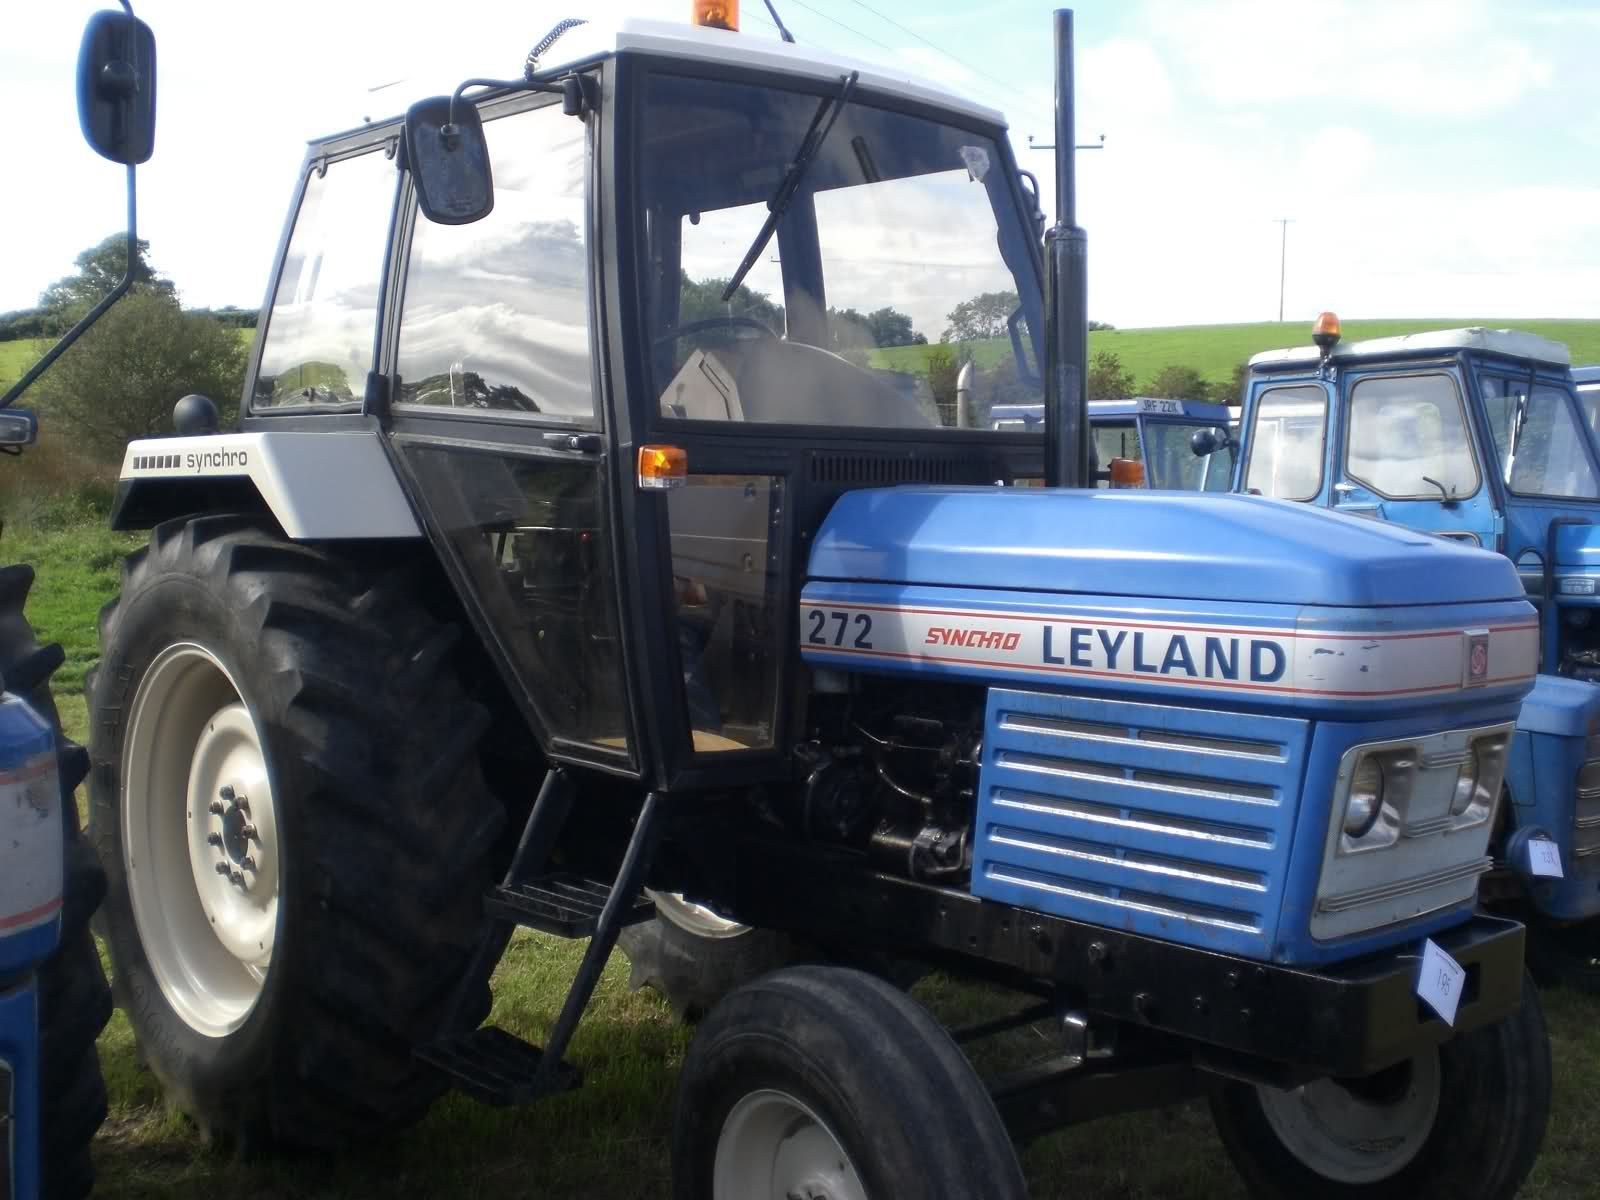 Billedresultat for leyland 2100 tractor